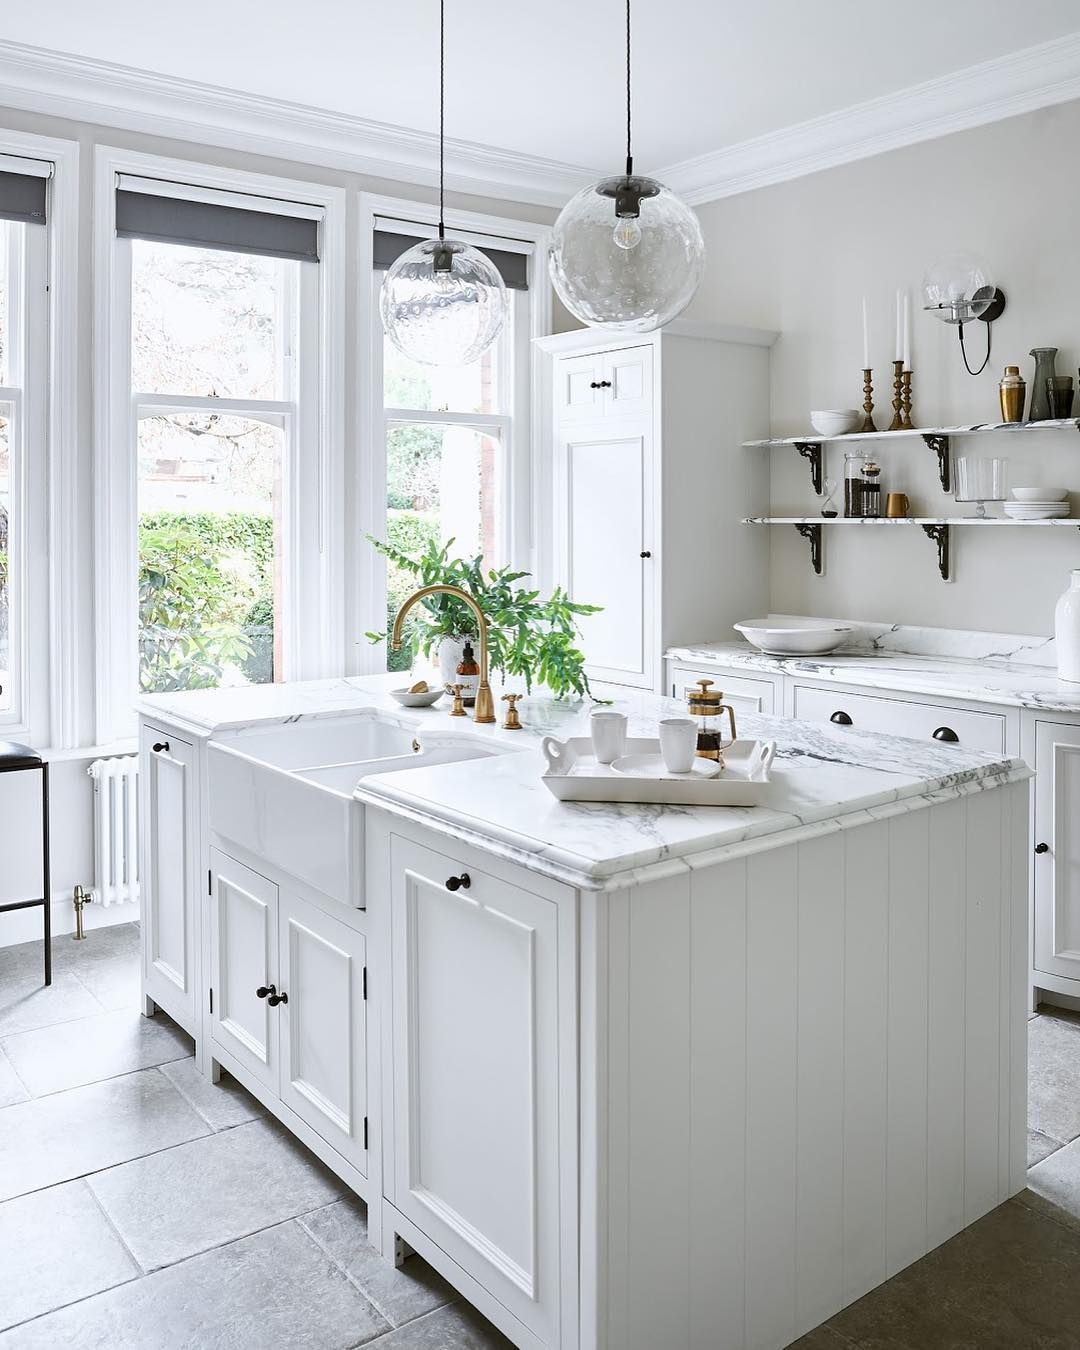 Neptune On Instagram There S Nothing To Say That All The Hardware In Your Kitchen Needs To Matc Kitchen Interior Classic Kitchen Design Modern Kitchen Design